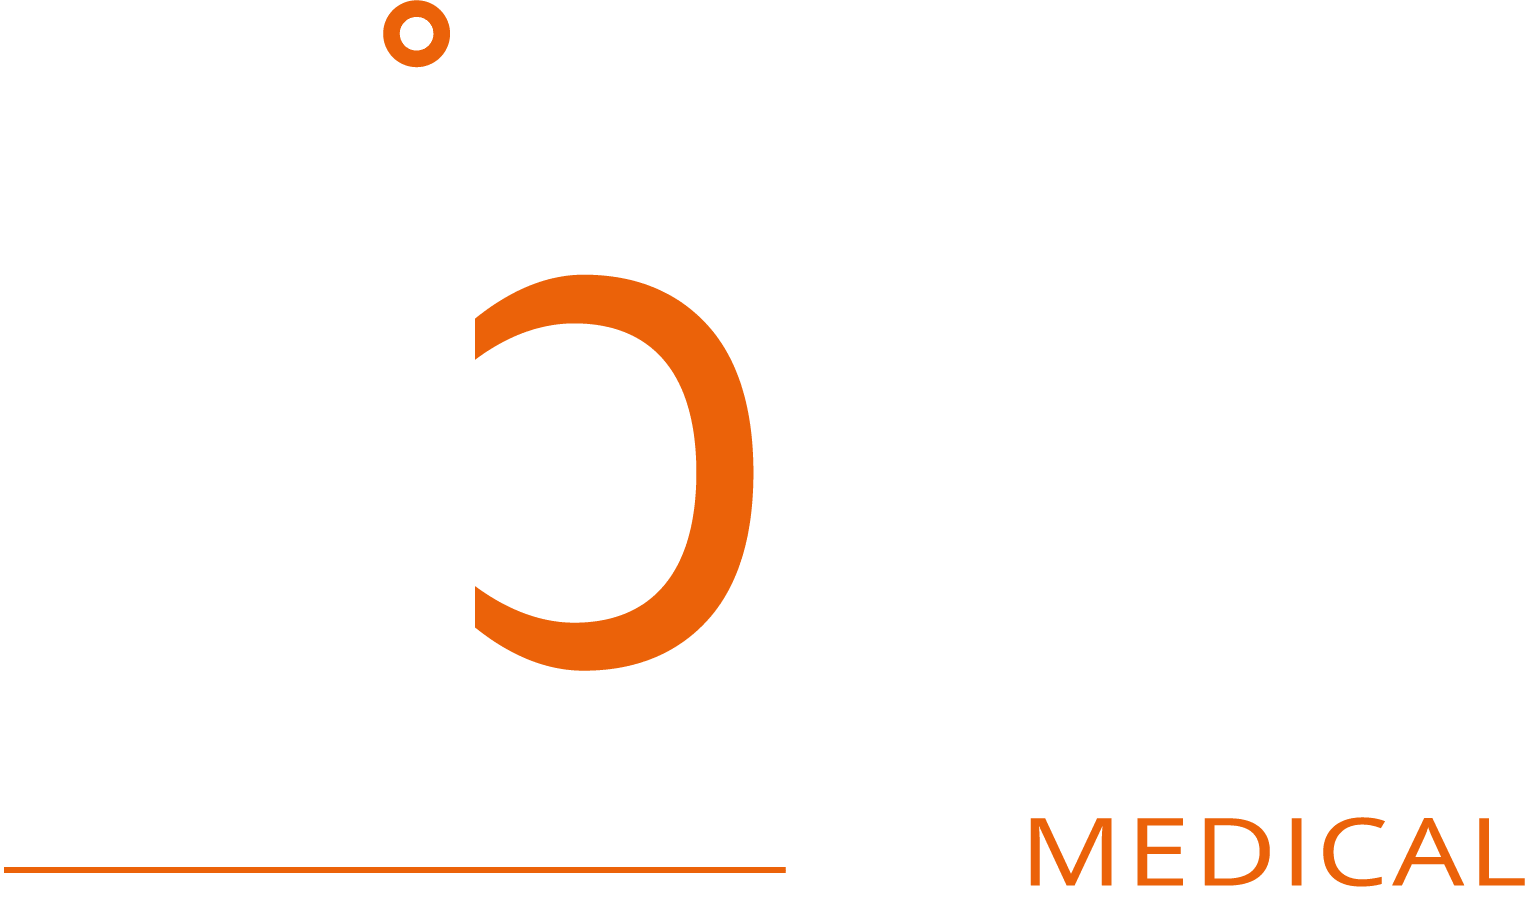 Abys® Medical - The Only All-in-one Orthopedic Surgery 4.0 Solution